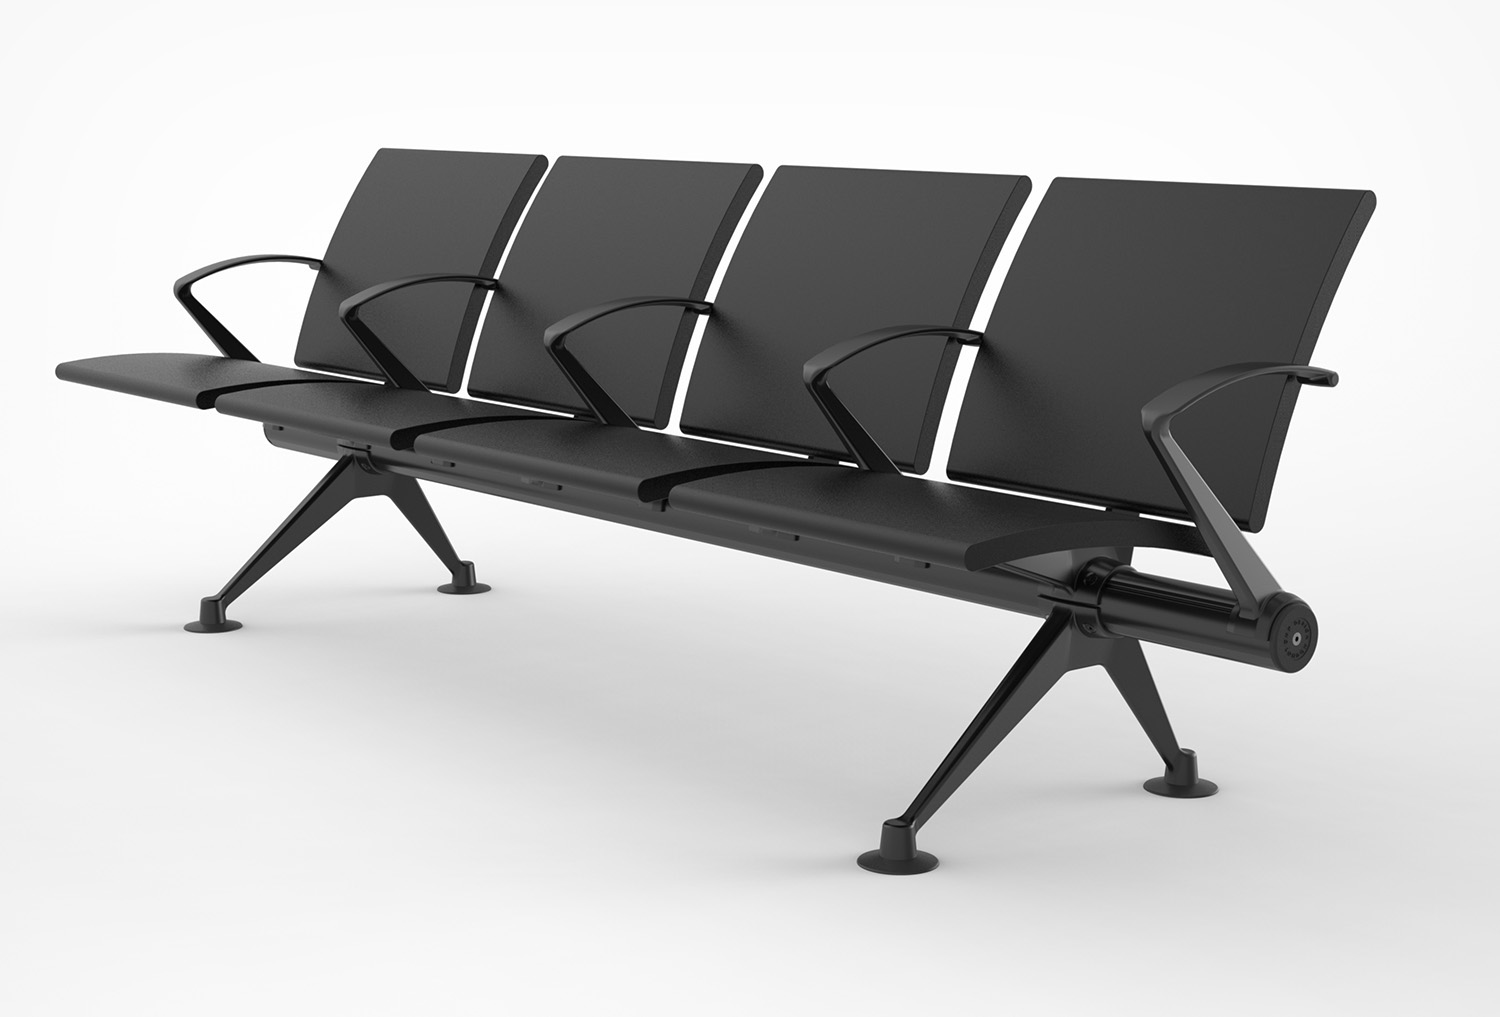 Airport terminal seating systems omk design ltd for International seating and decor